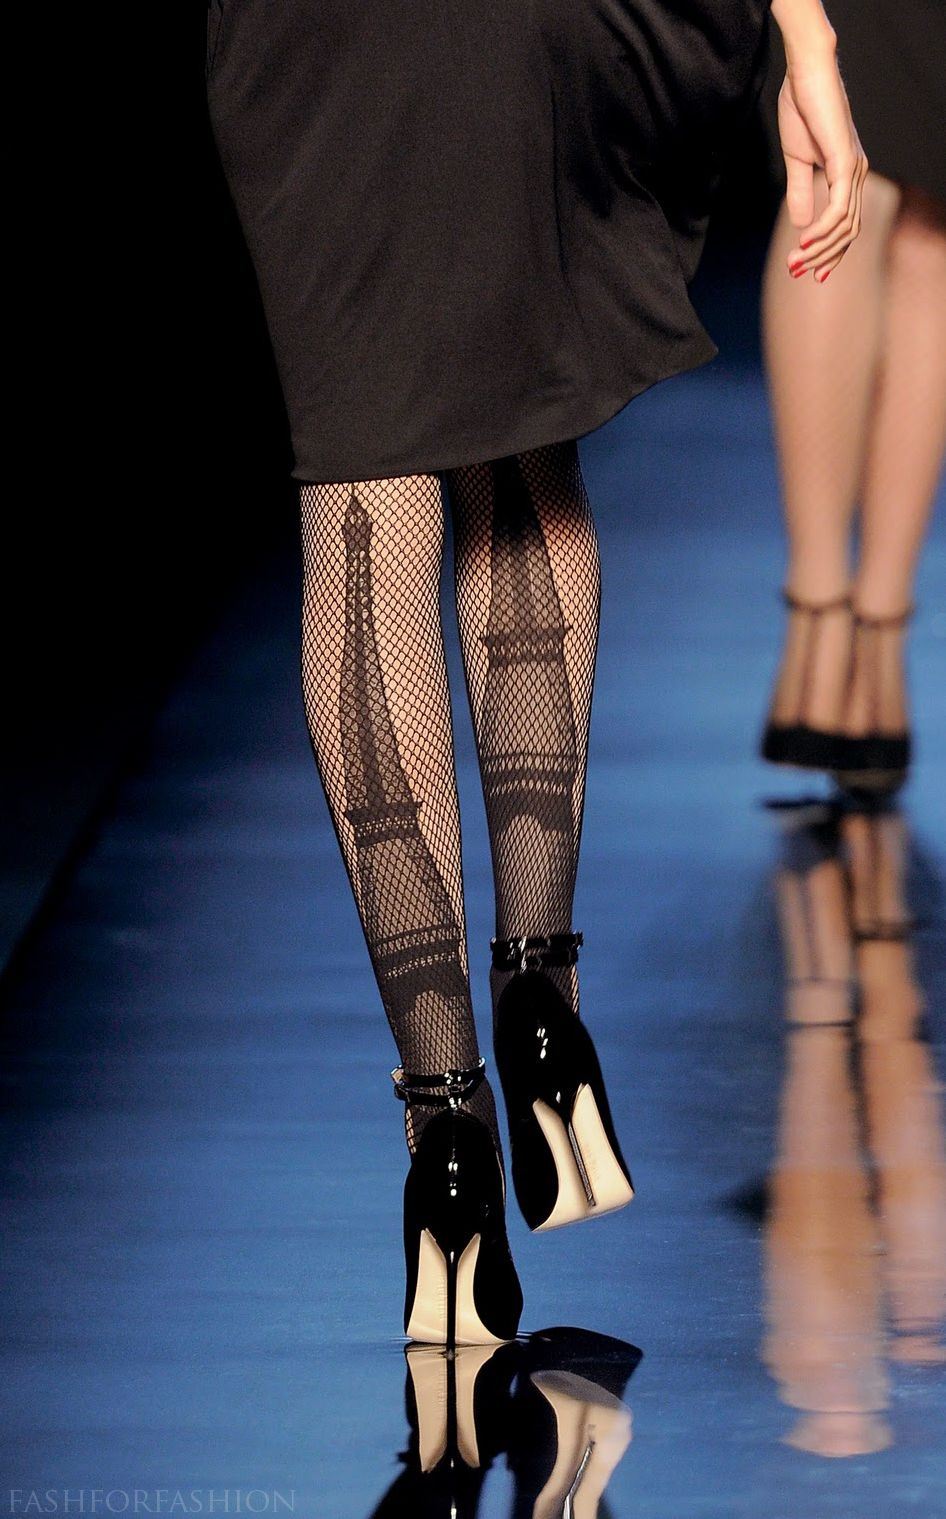 Fishnet tights for Parisiennes